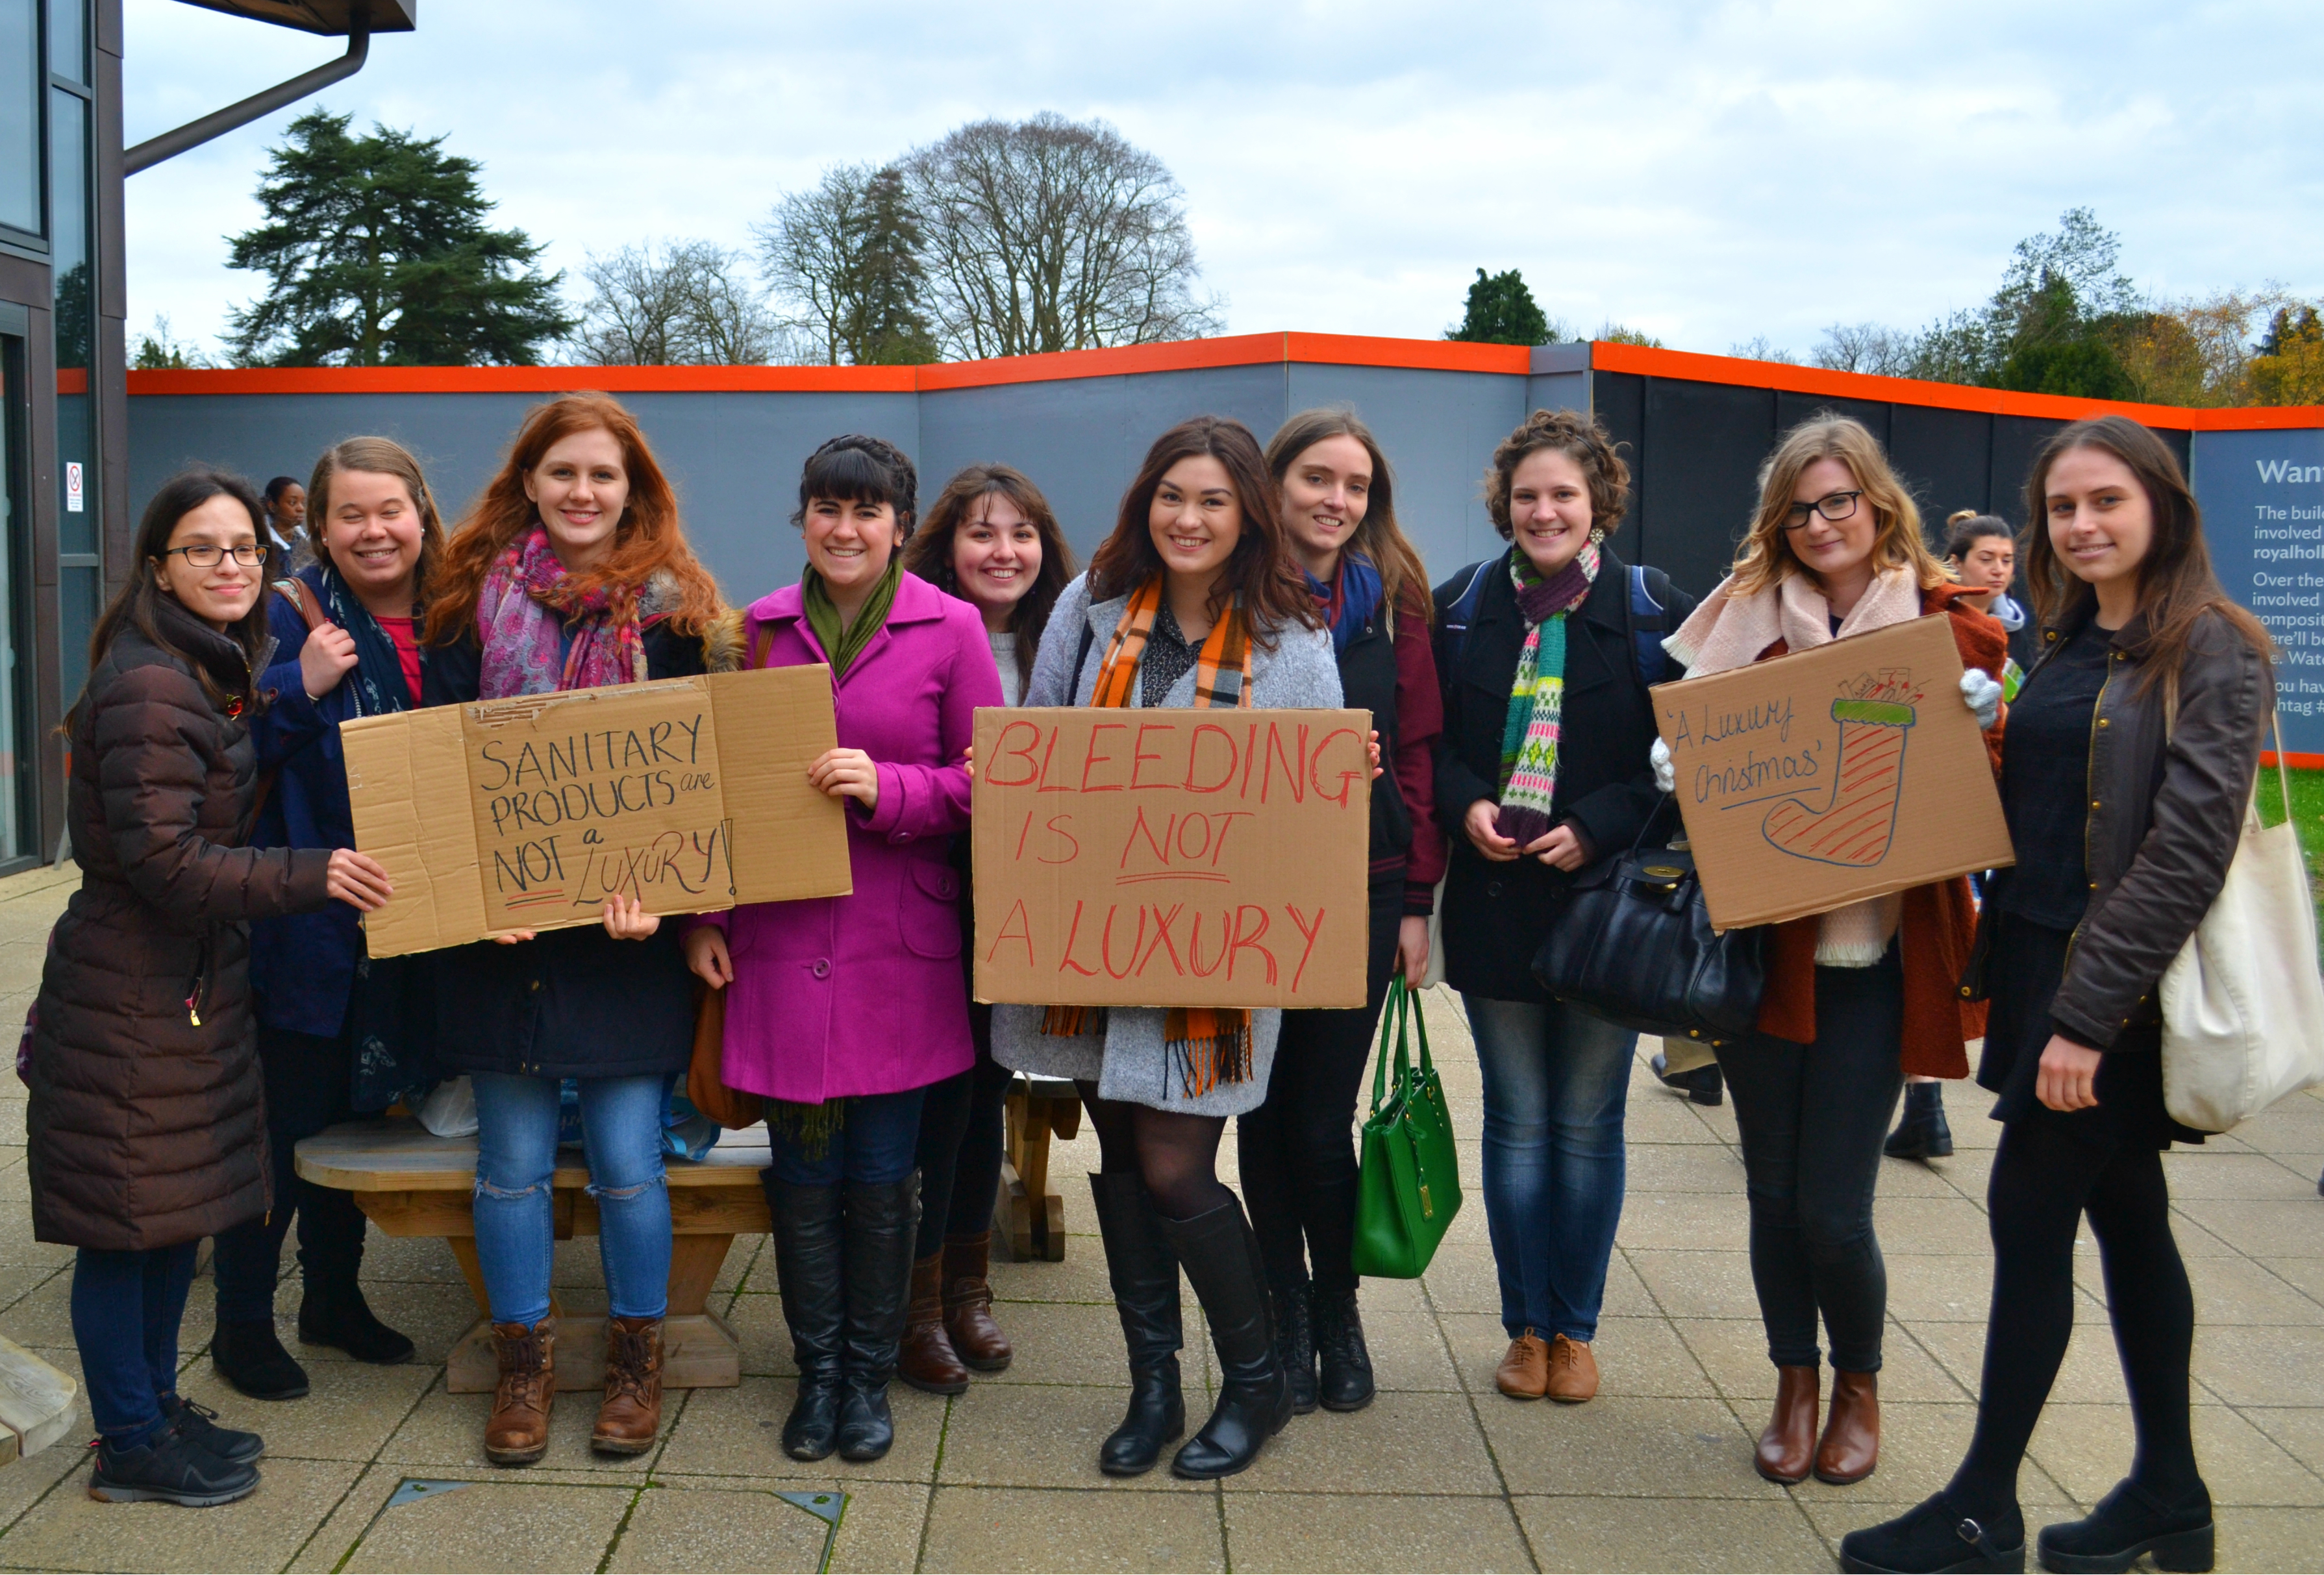 Students at Royal Holloway protesting against the tampon tax.